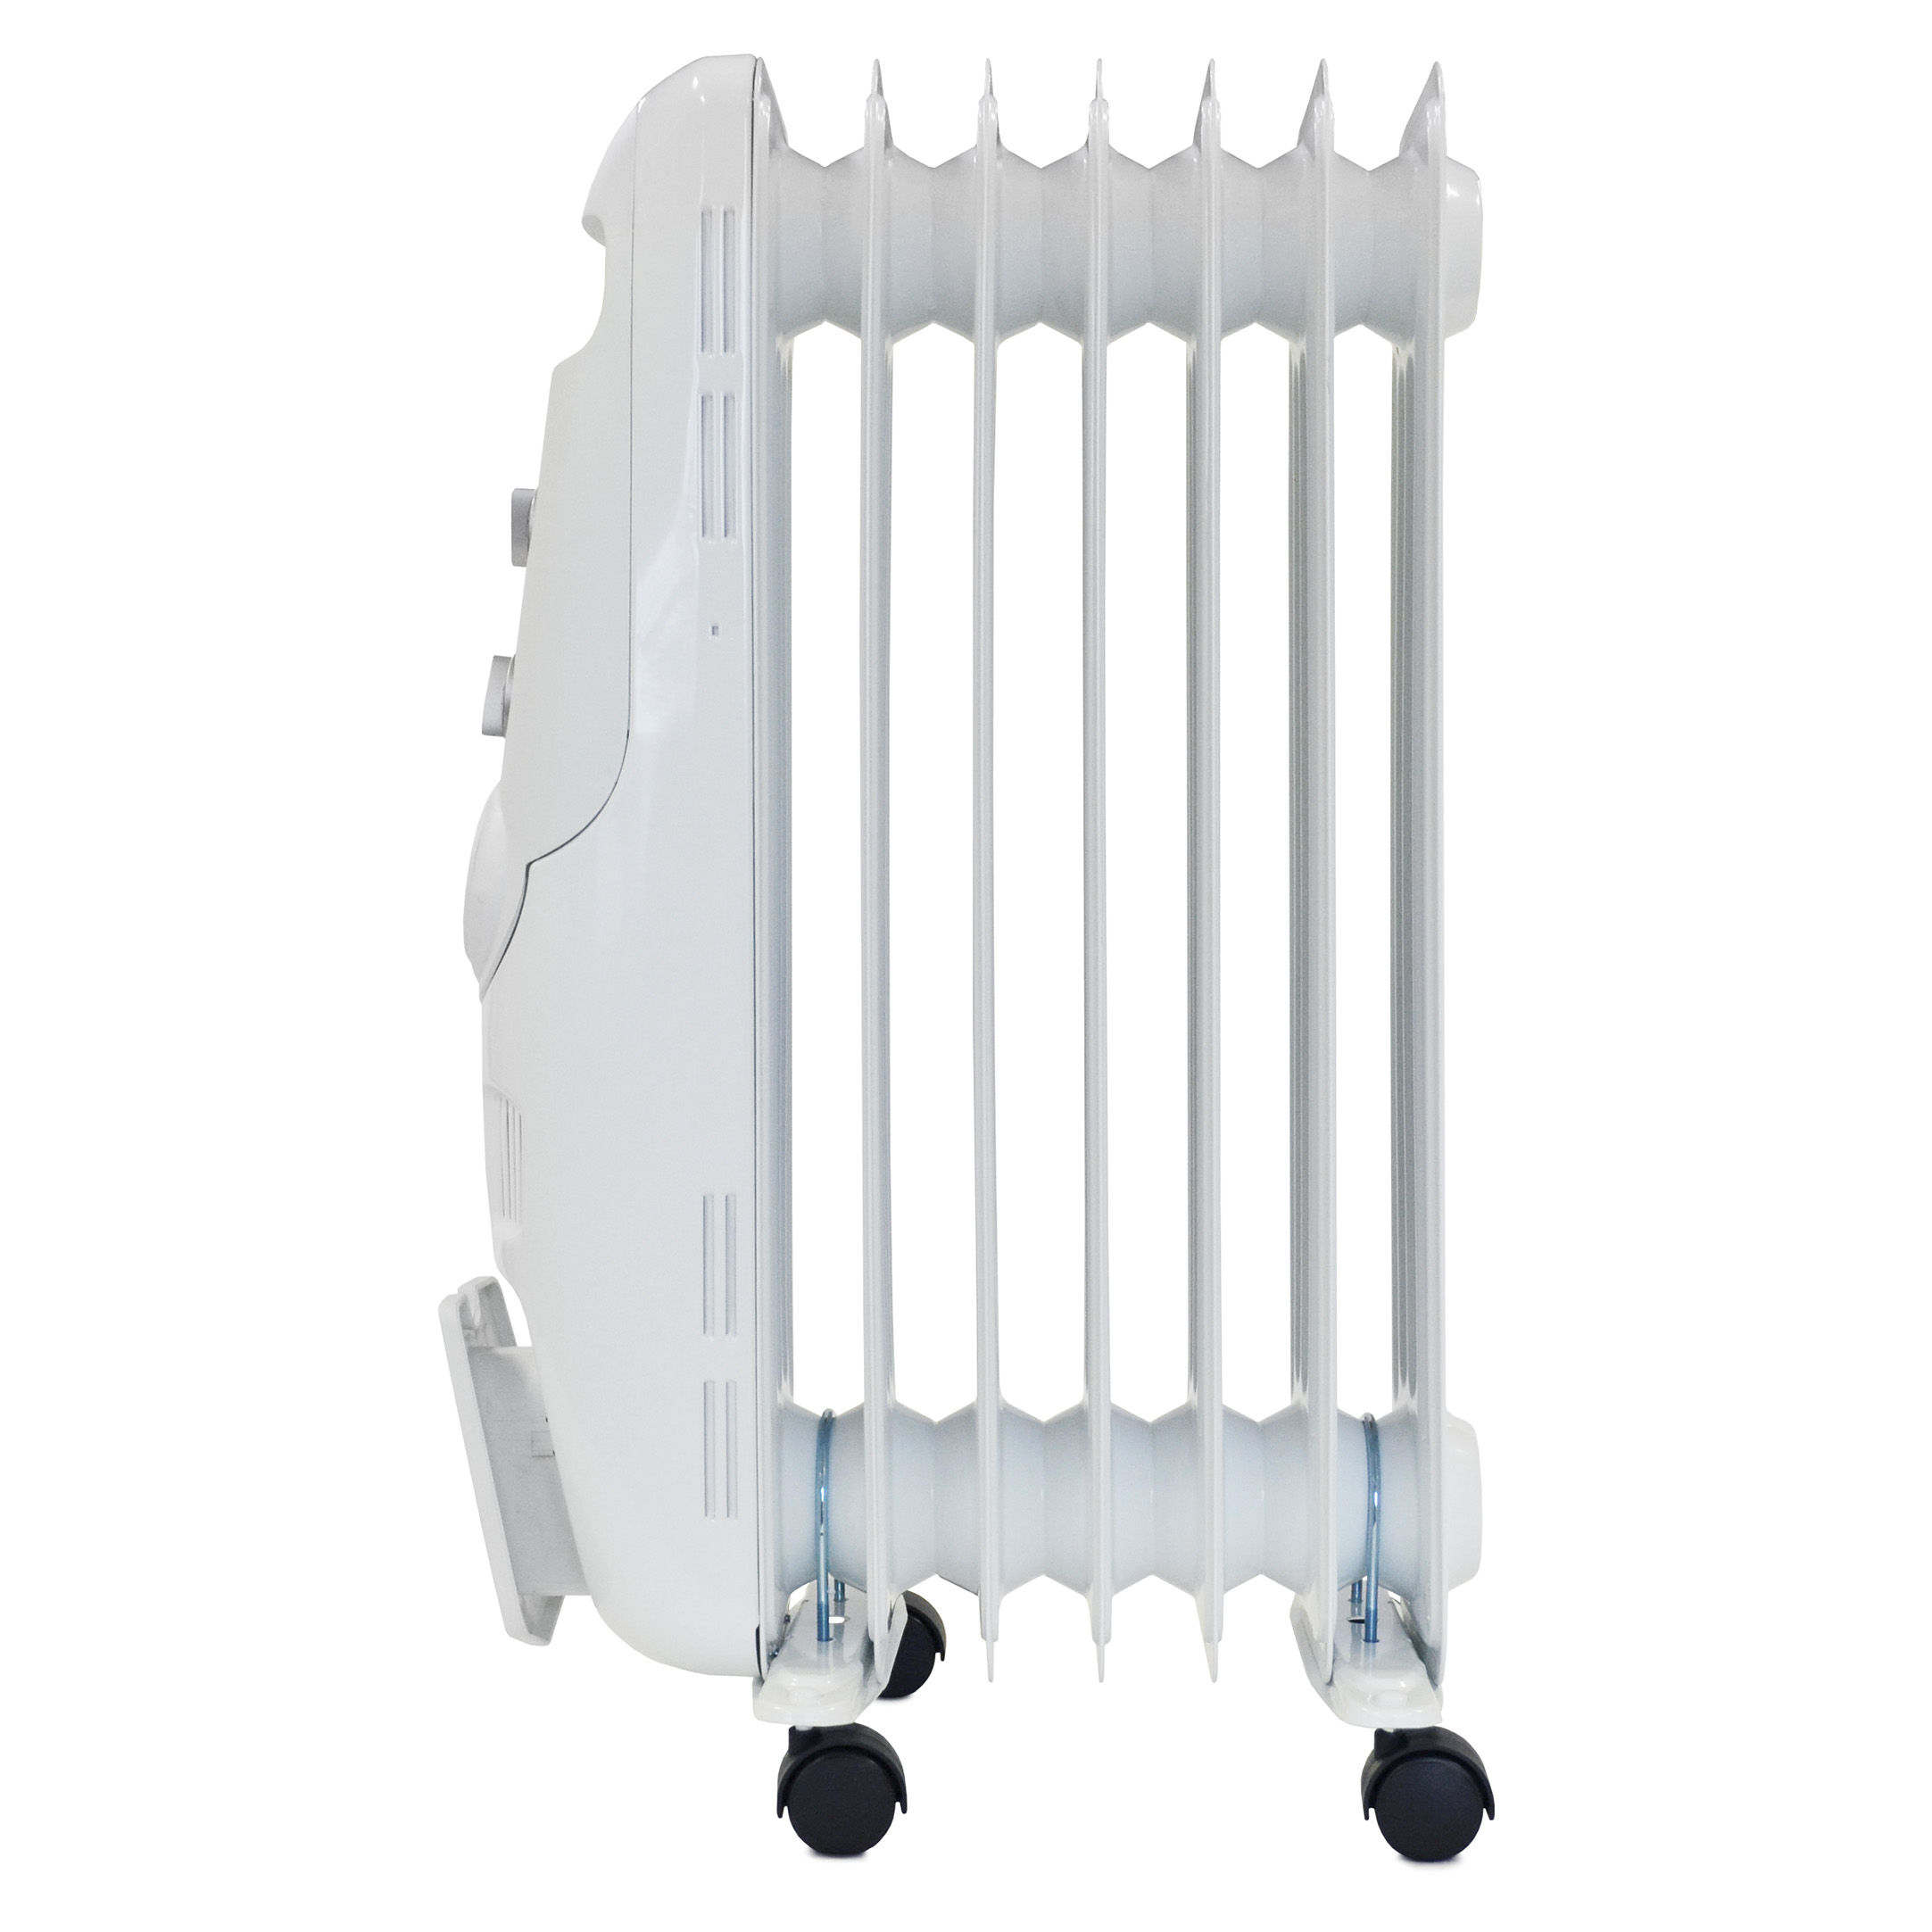 Fan Heaters Igenix 1.5kW Oil Filled Radiator White Ref IG1650